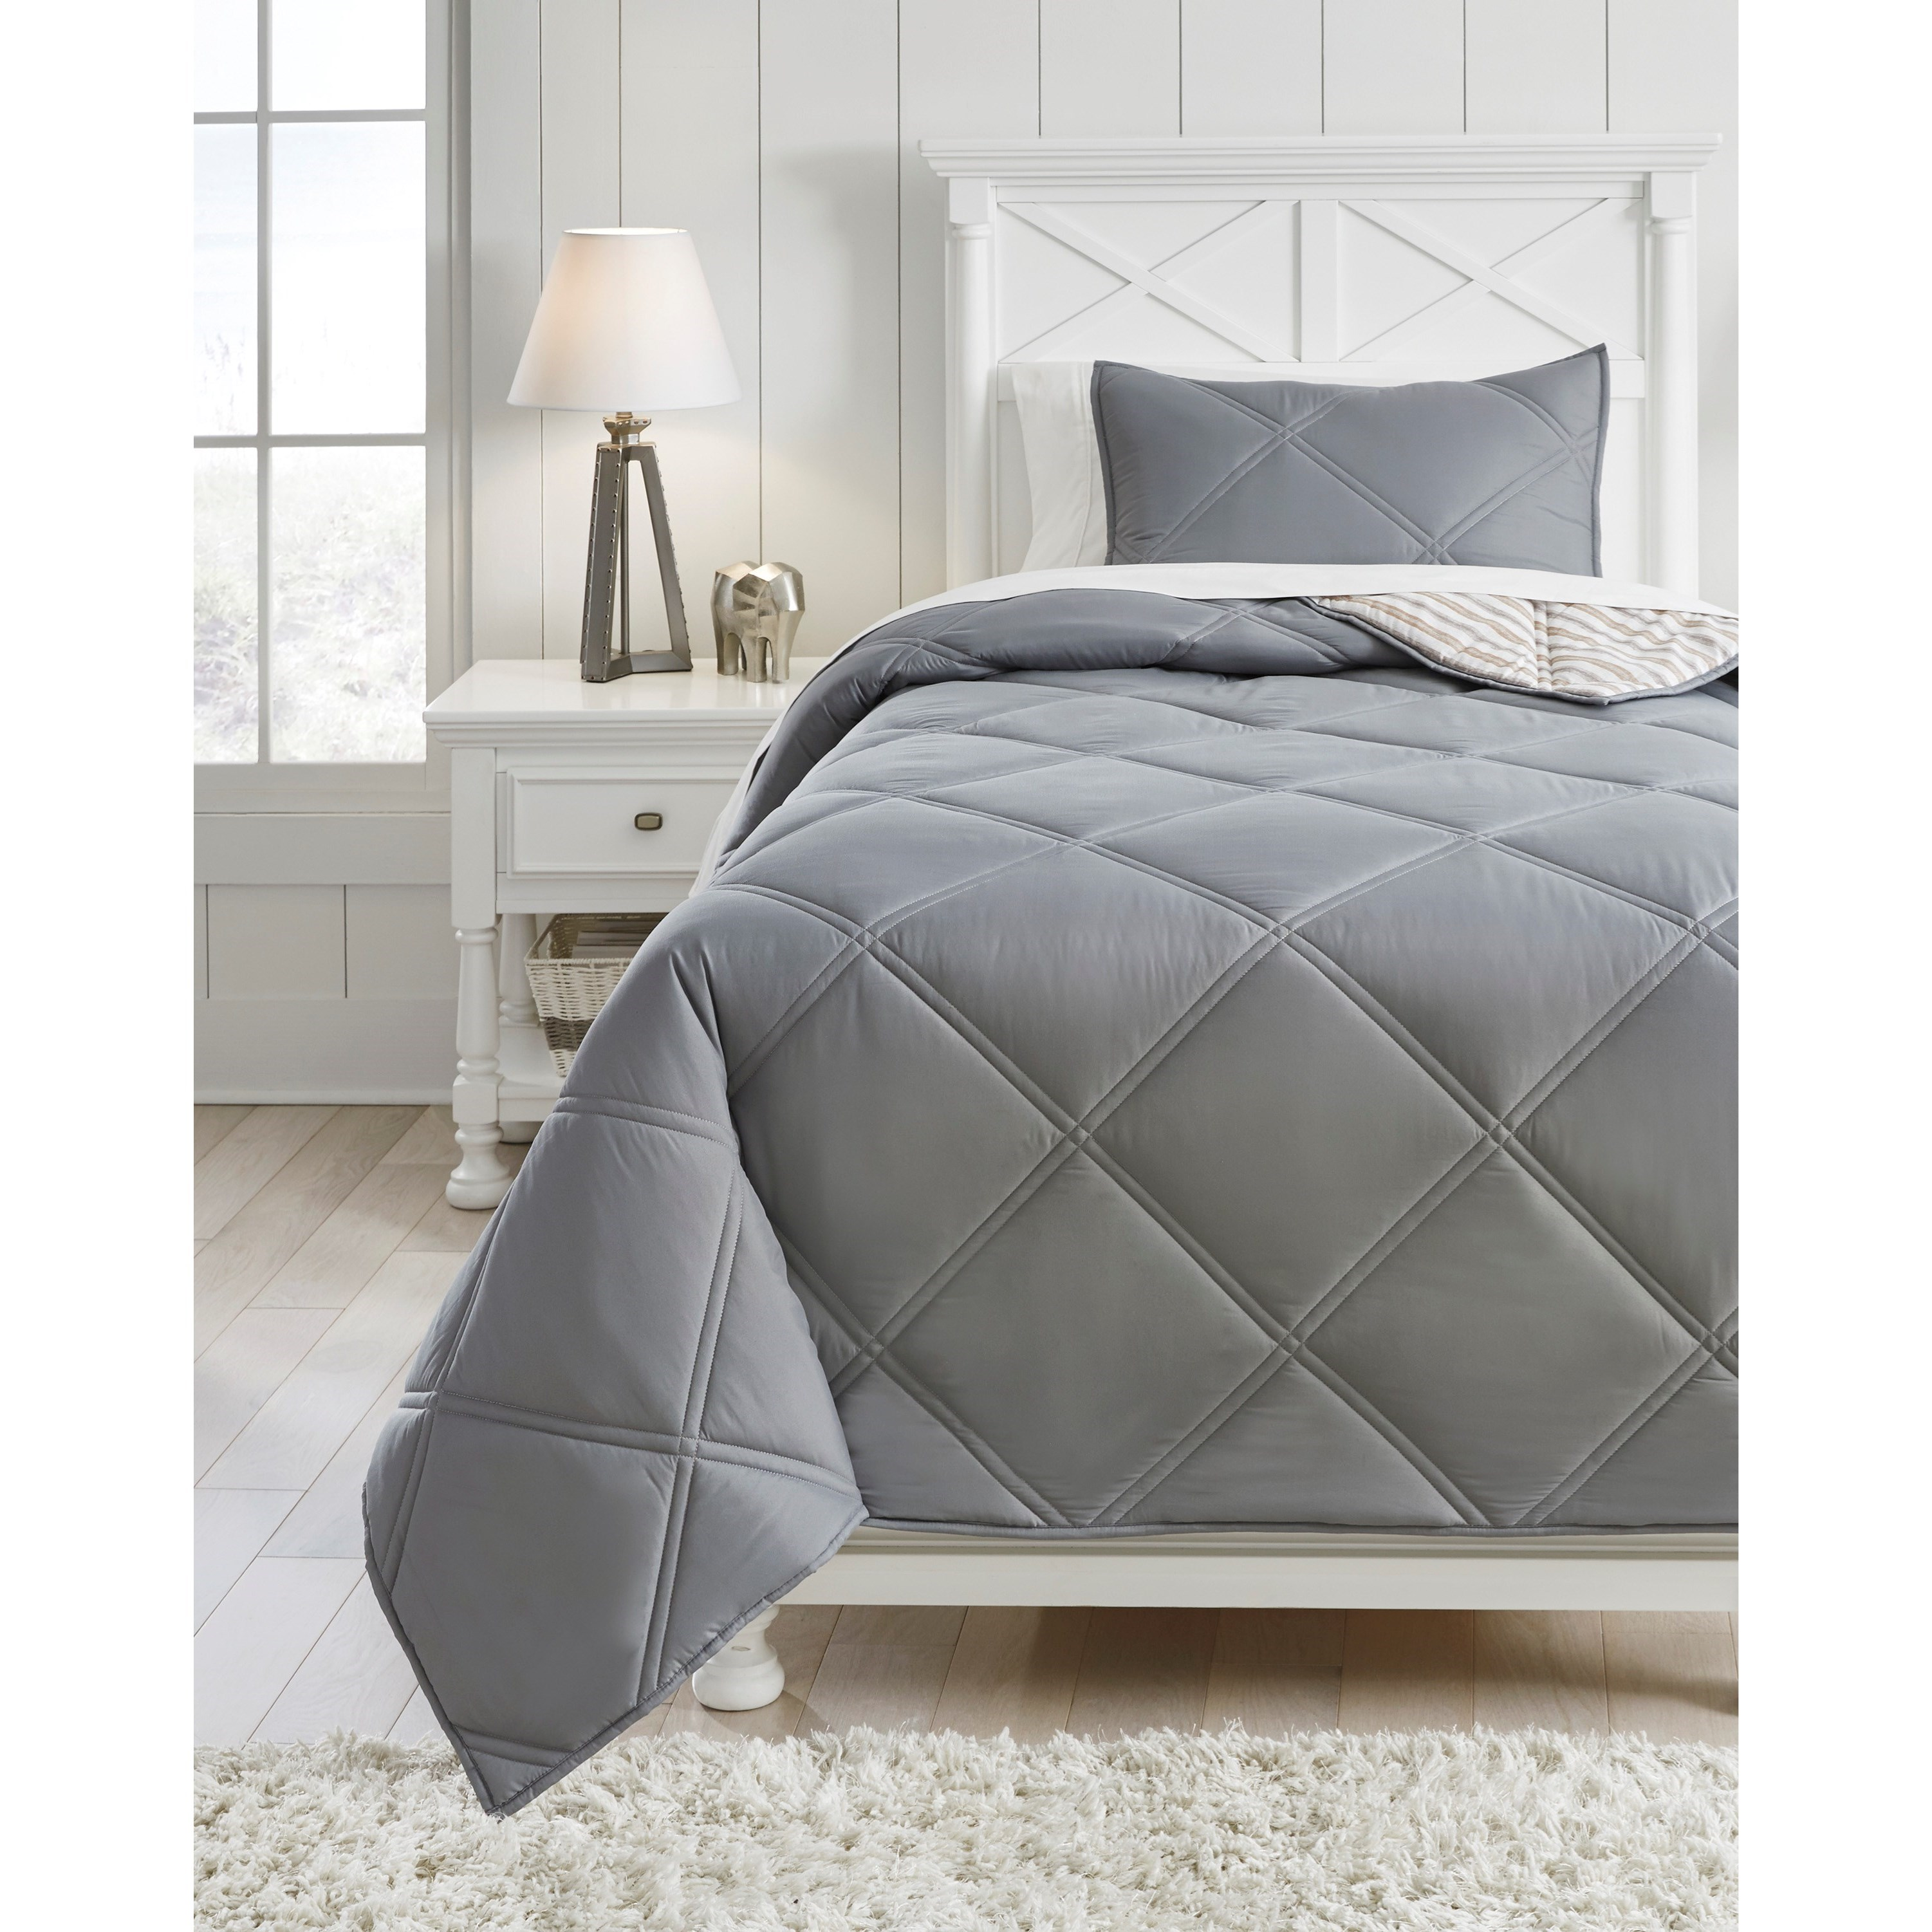 Bedding Sets Twin Rhey Tan/Brown/Gray Comforter Set by Ashley (Signature Design) at Johnny Janosik